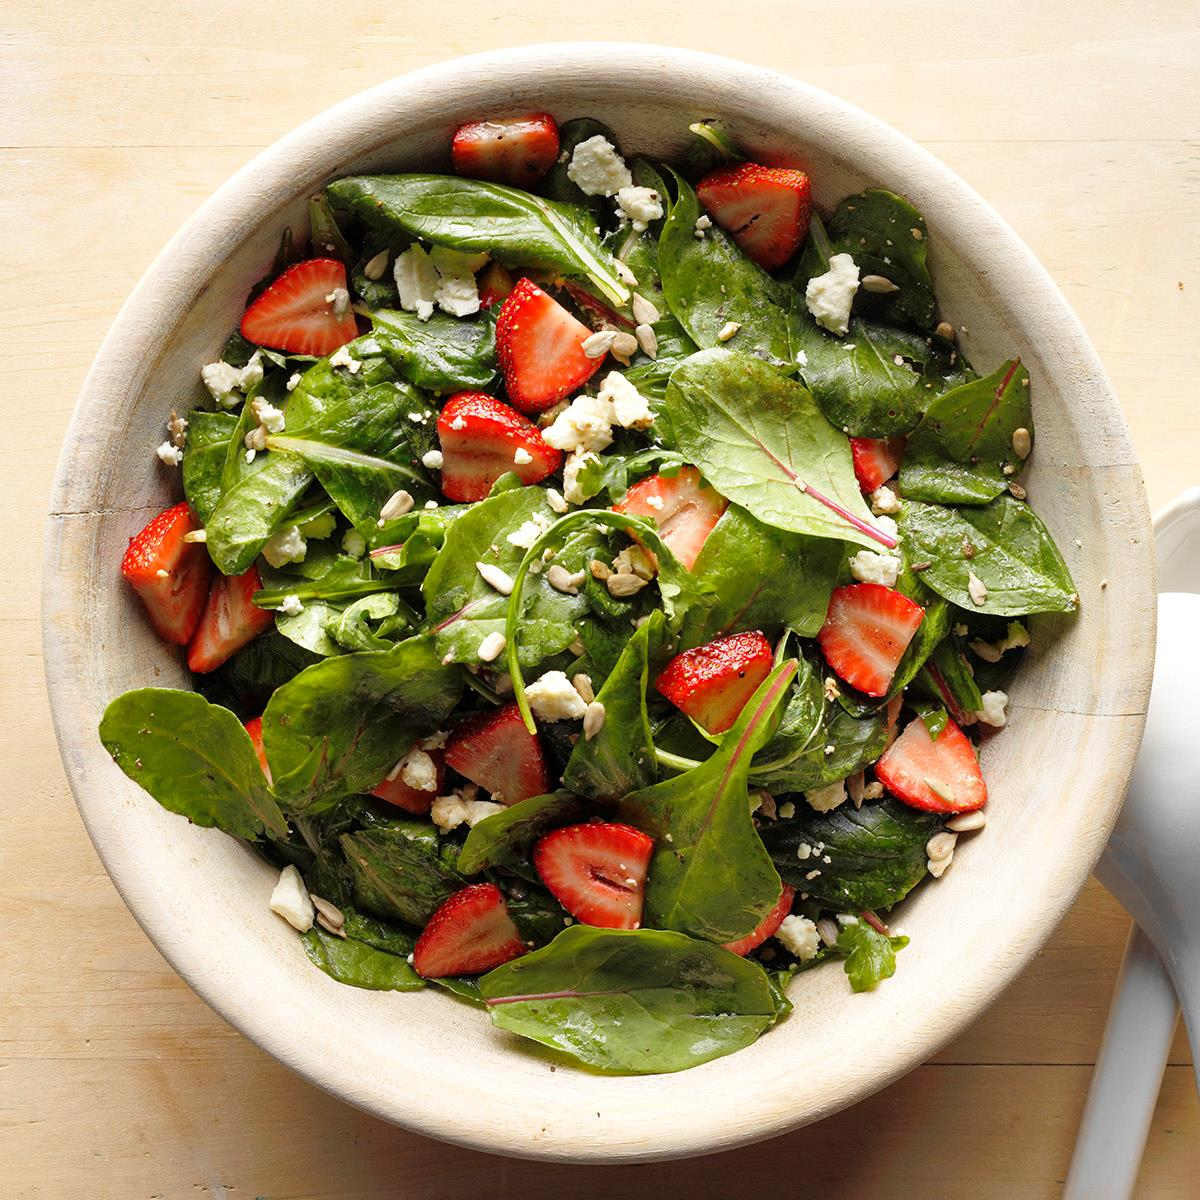 Strawberry Feta Tossed Salad Recipe How To Make It Taste Of Home